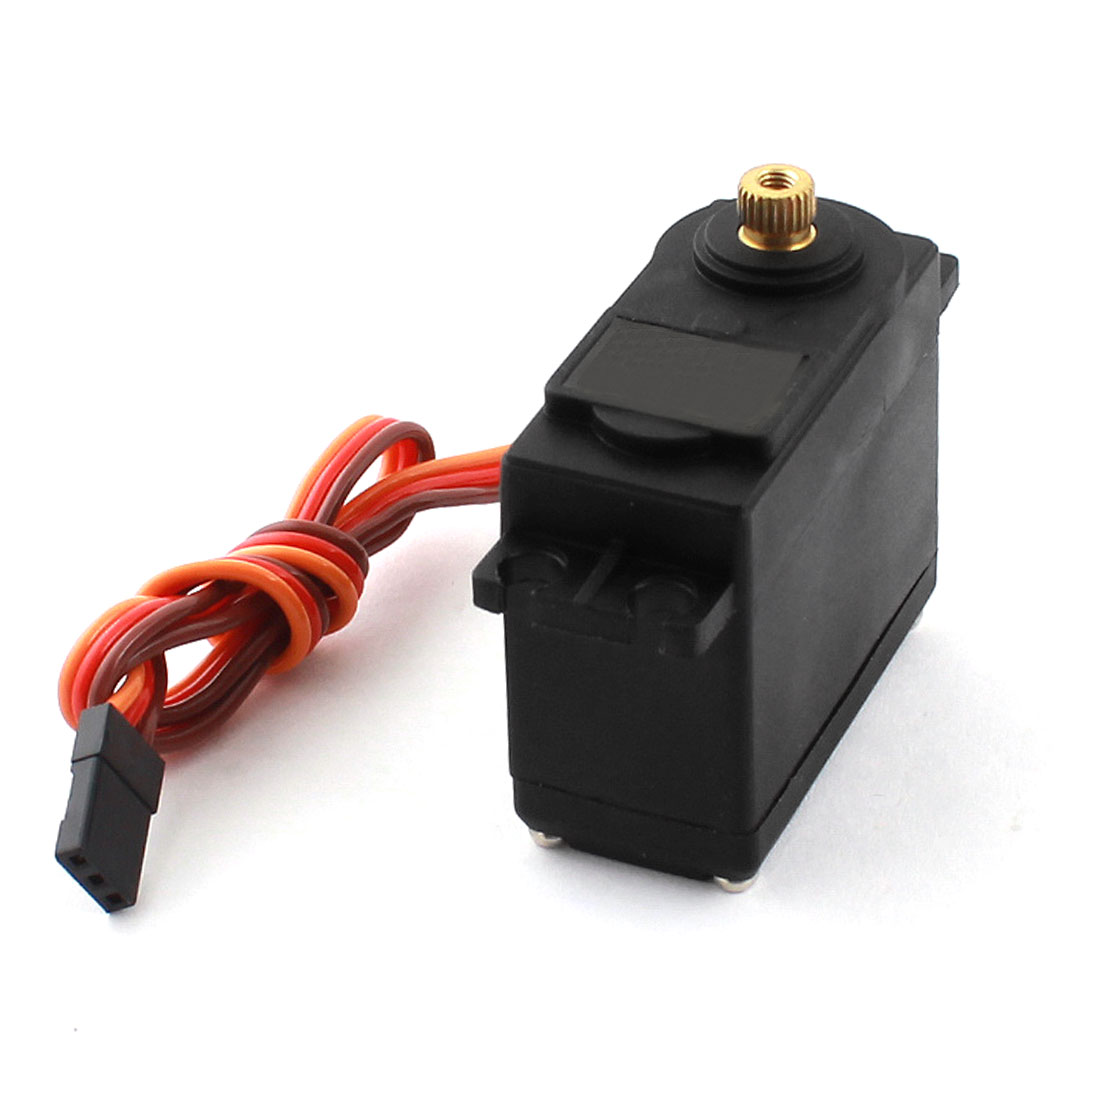 MG995 3Pin Balance Connector Metal Gear High Speed Servo for RC Helicopter